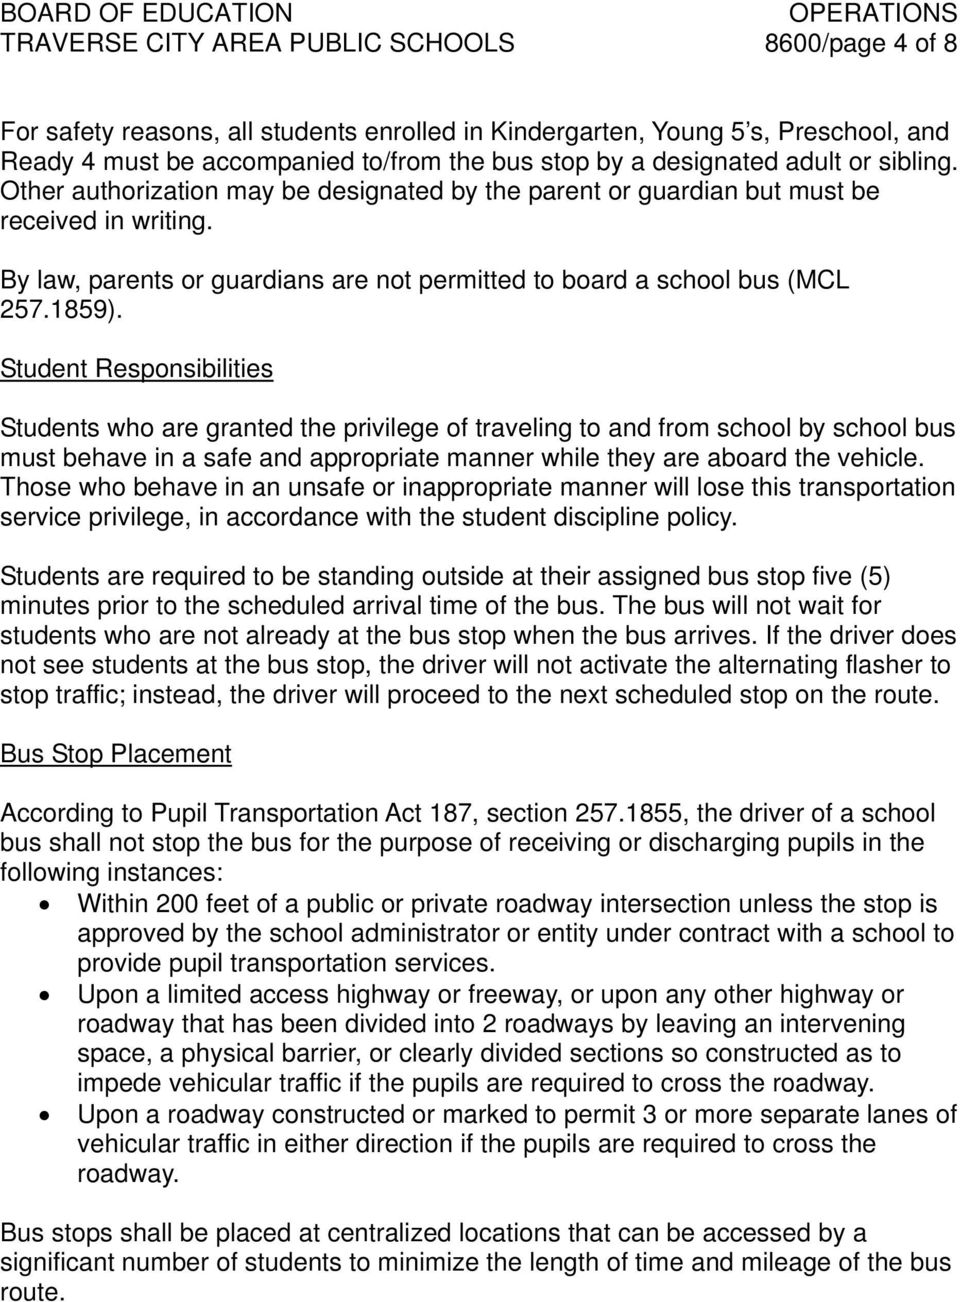 By law, parents or guardians are not permitted to board a school bus (MCL 257.1859).